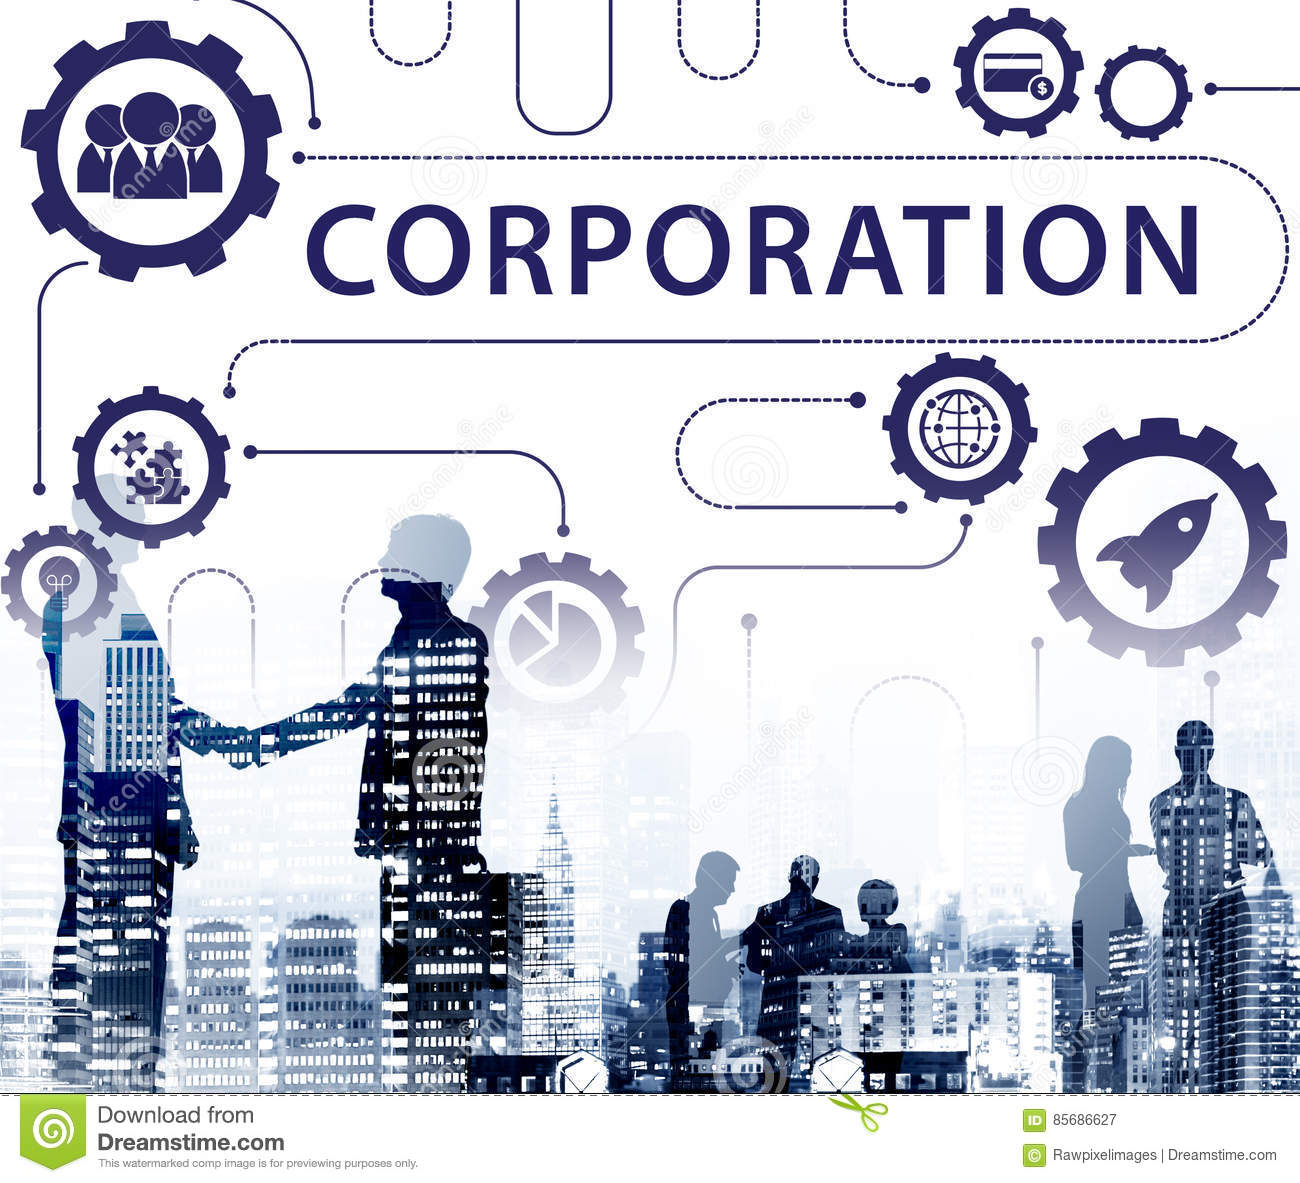 All graphics newest royalty free stock photos stock illustrations - Royalty Free Illustration New Business Startup Graphics Concept Stock Illustration